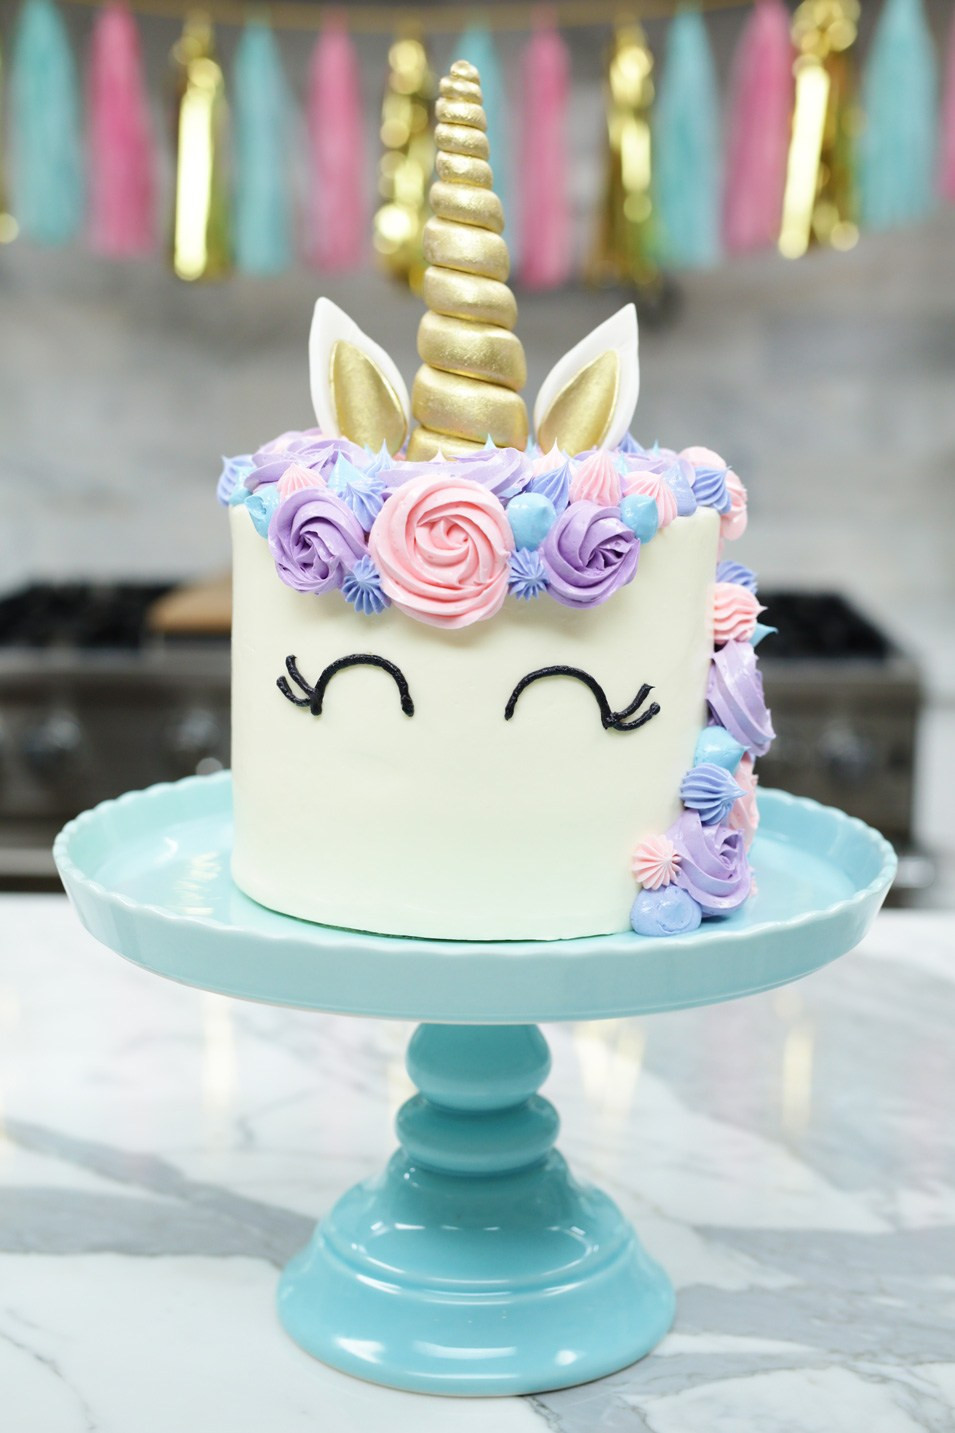 Best ideas about Unicorn Birthday Cake . Save or Pin How to make a Unicorn Cake Rosanna Pansino Now.